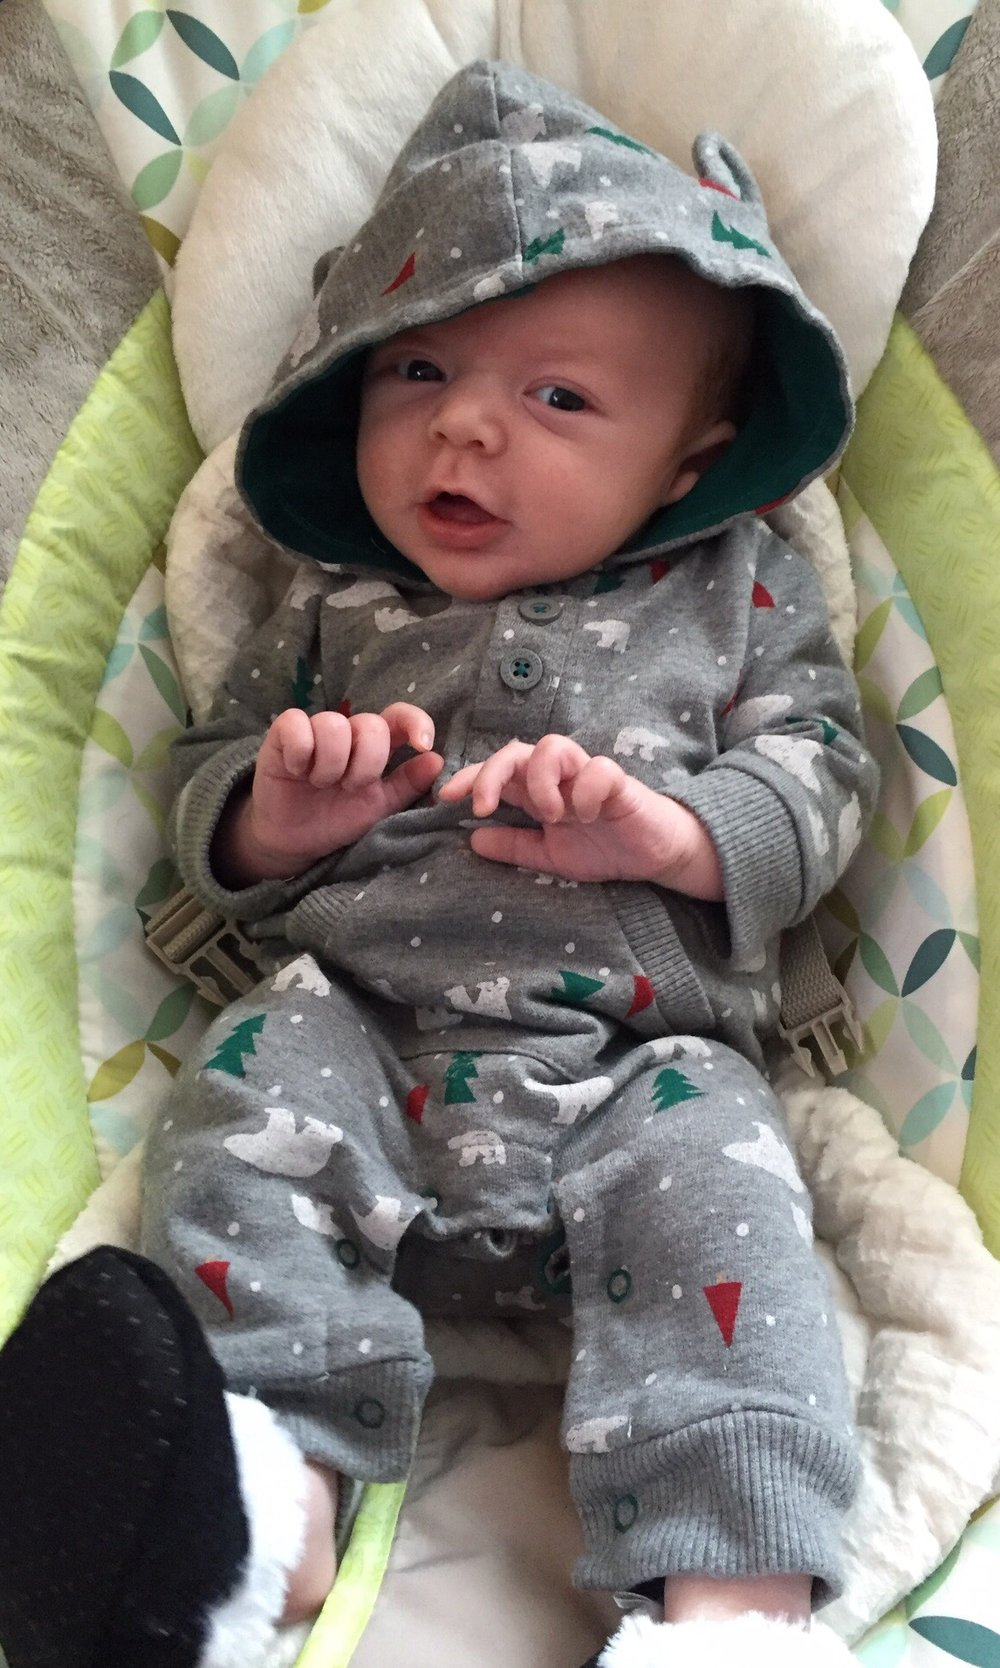 Joshua, 1 month old, ready for Christmas